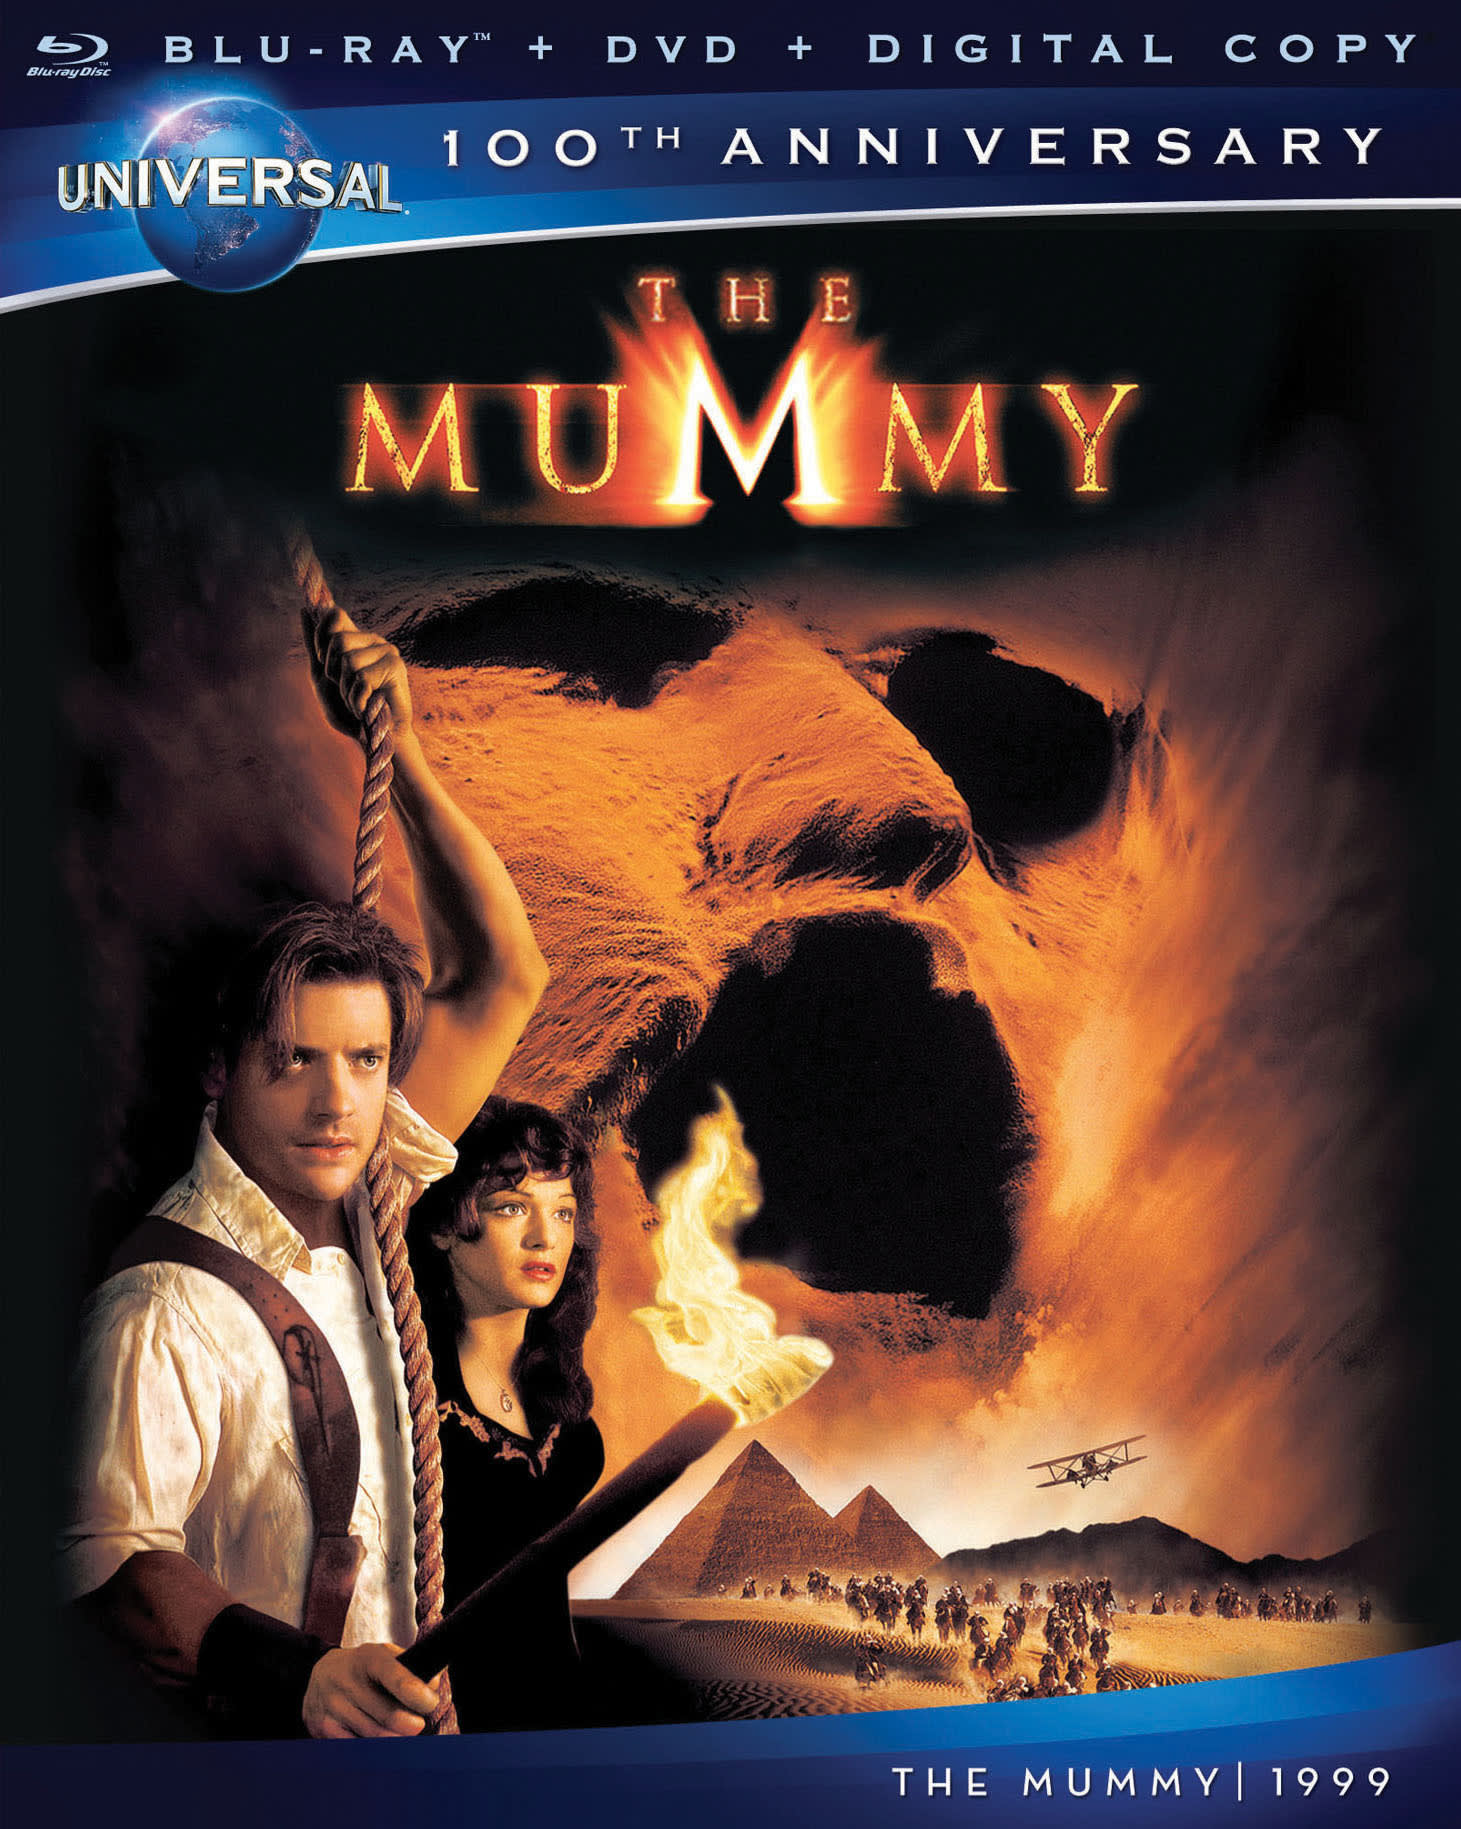 The Mummy (1999) (DVD + Digital) [Blu-ray]